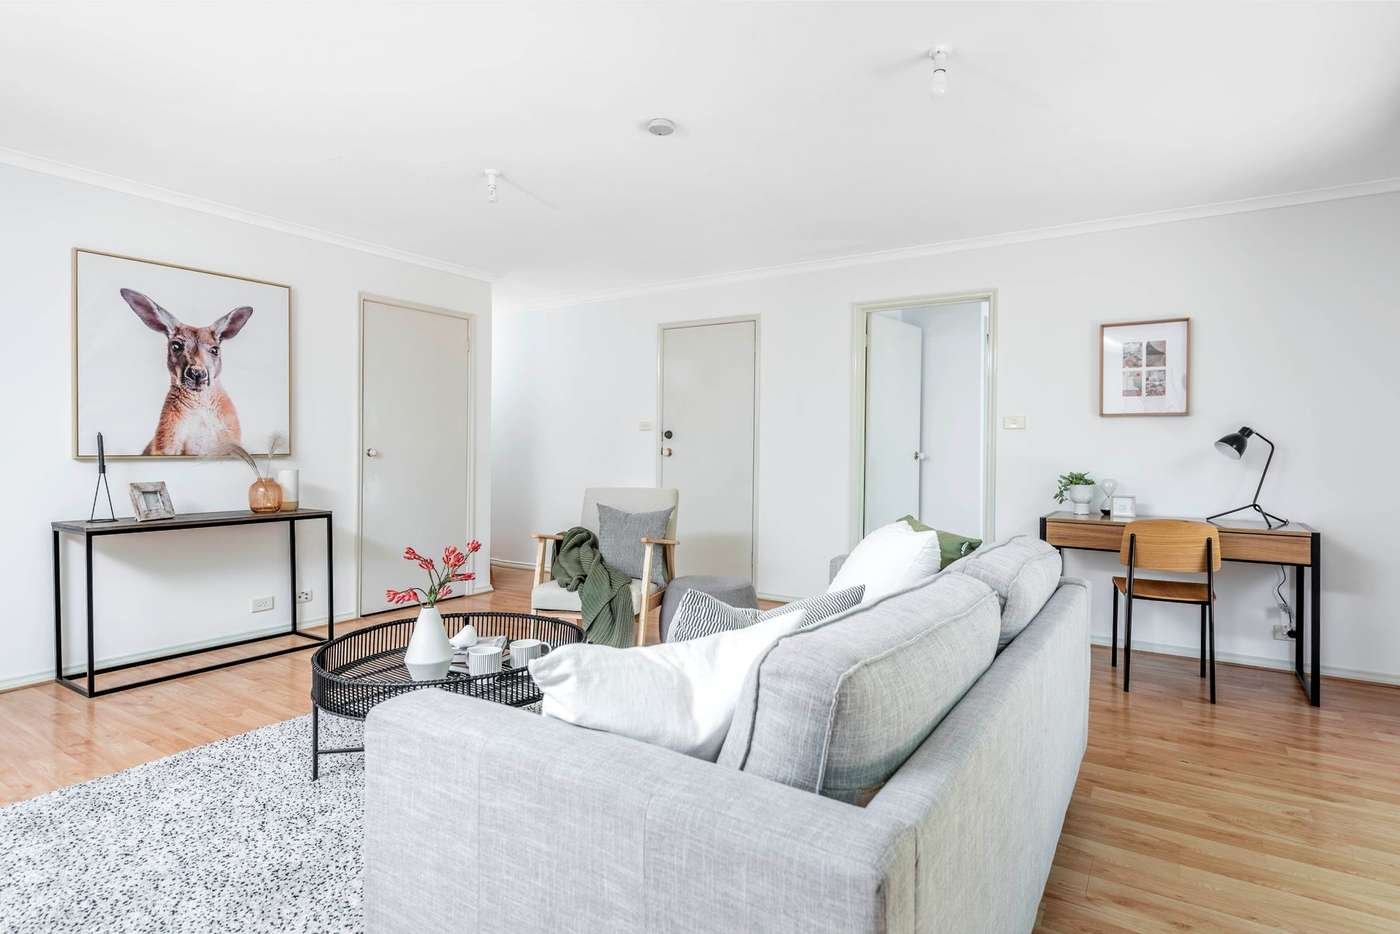 Main view of Homely house listing, 10/48 Goldner Circuit, Melba ACT 2615